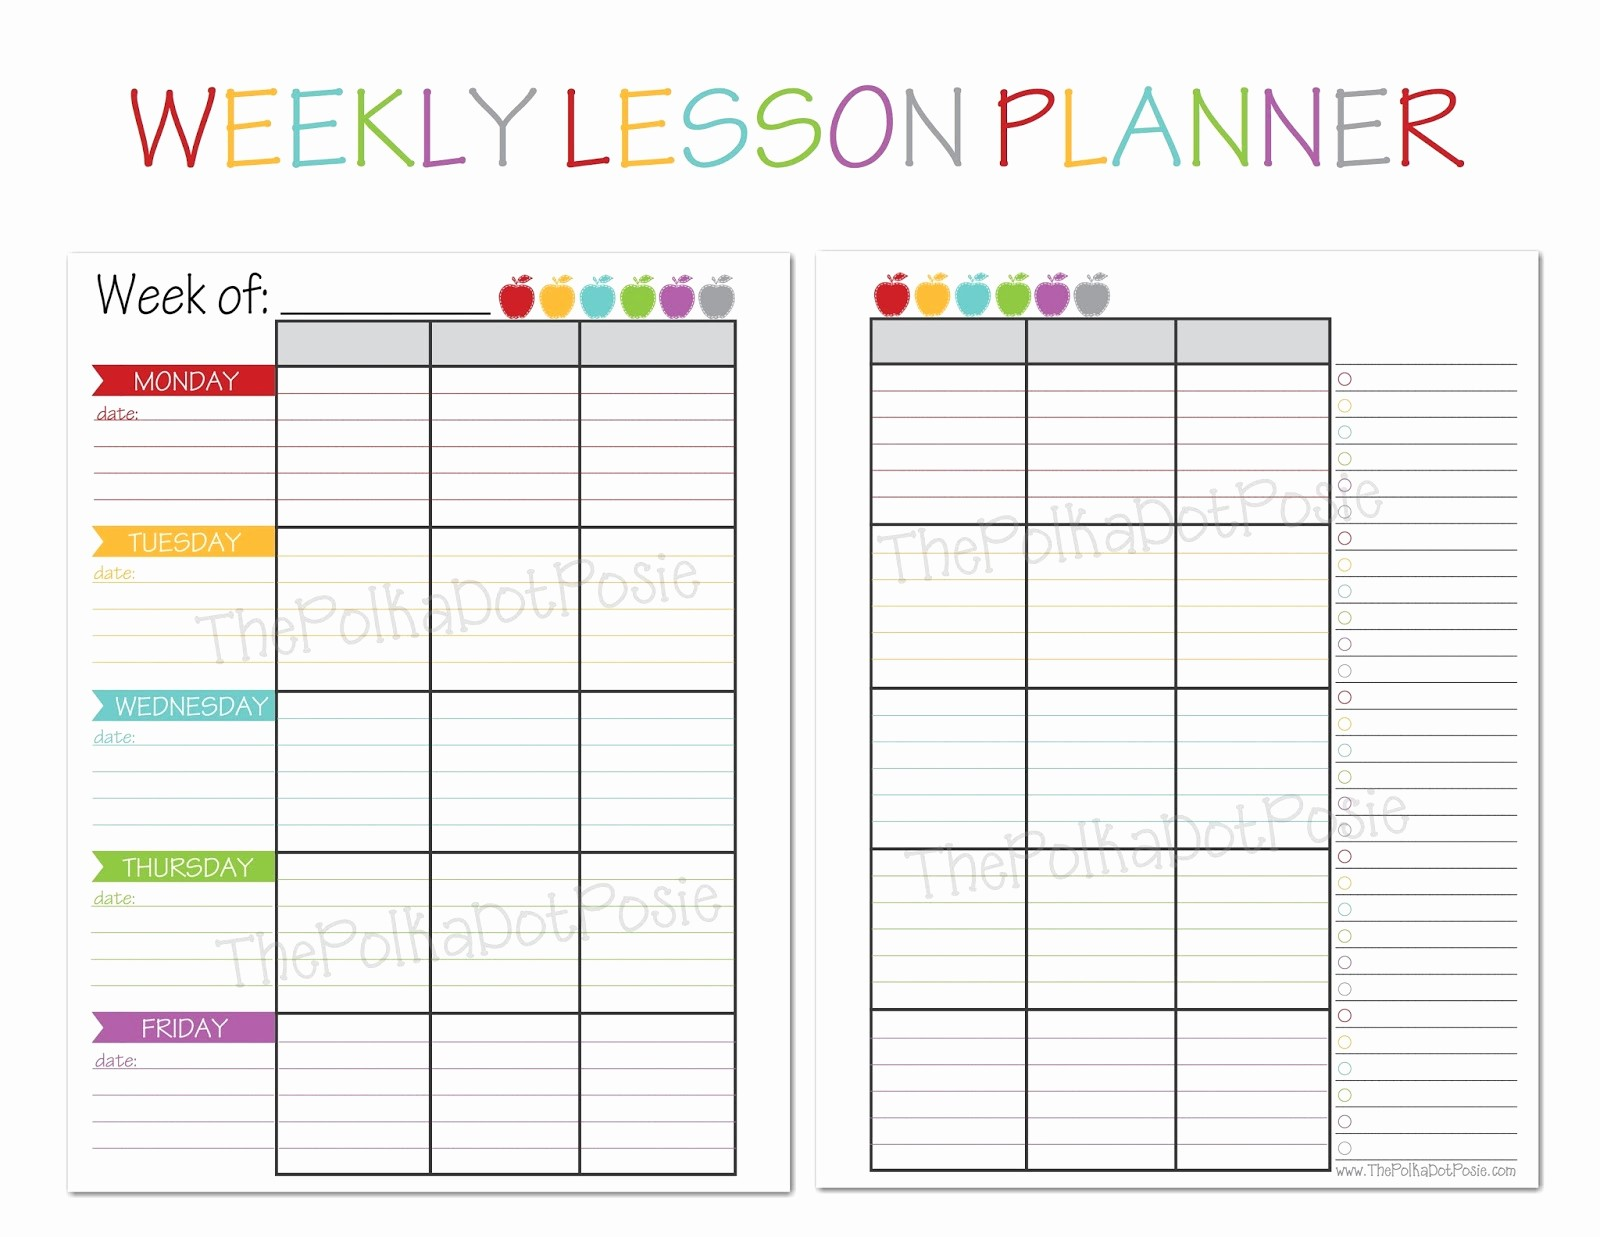 Teacher Weekly Planner Template Download Elegant the Polka Dot Posie New Teacher & Homeschool Planners